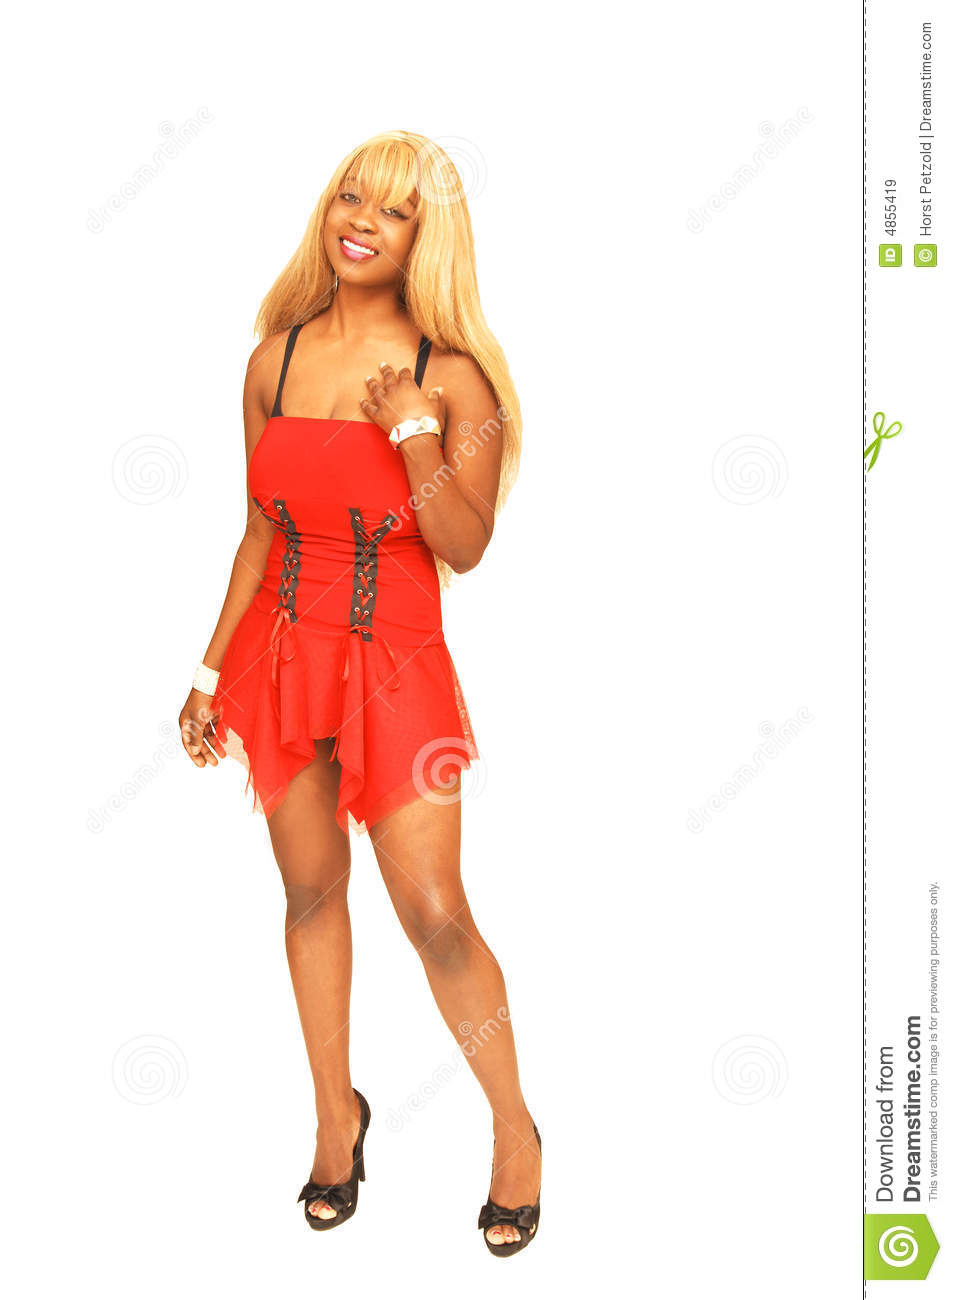 Jamaican dating site - Free online dating in Jamaica